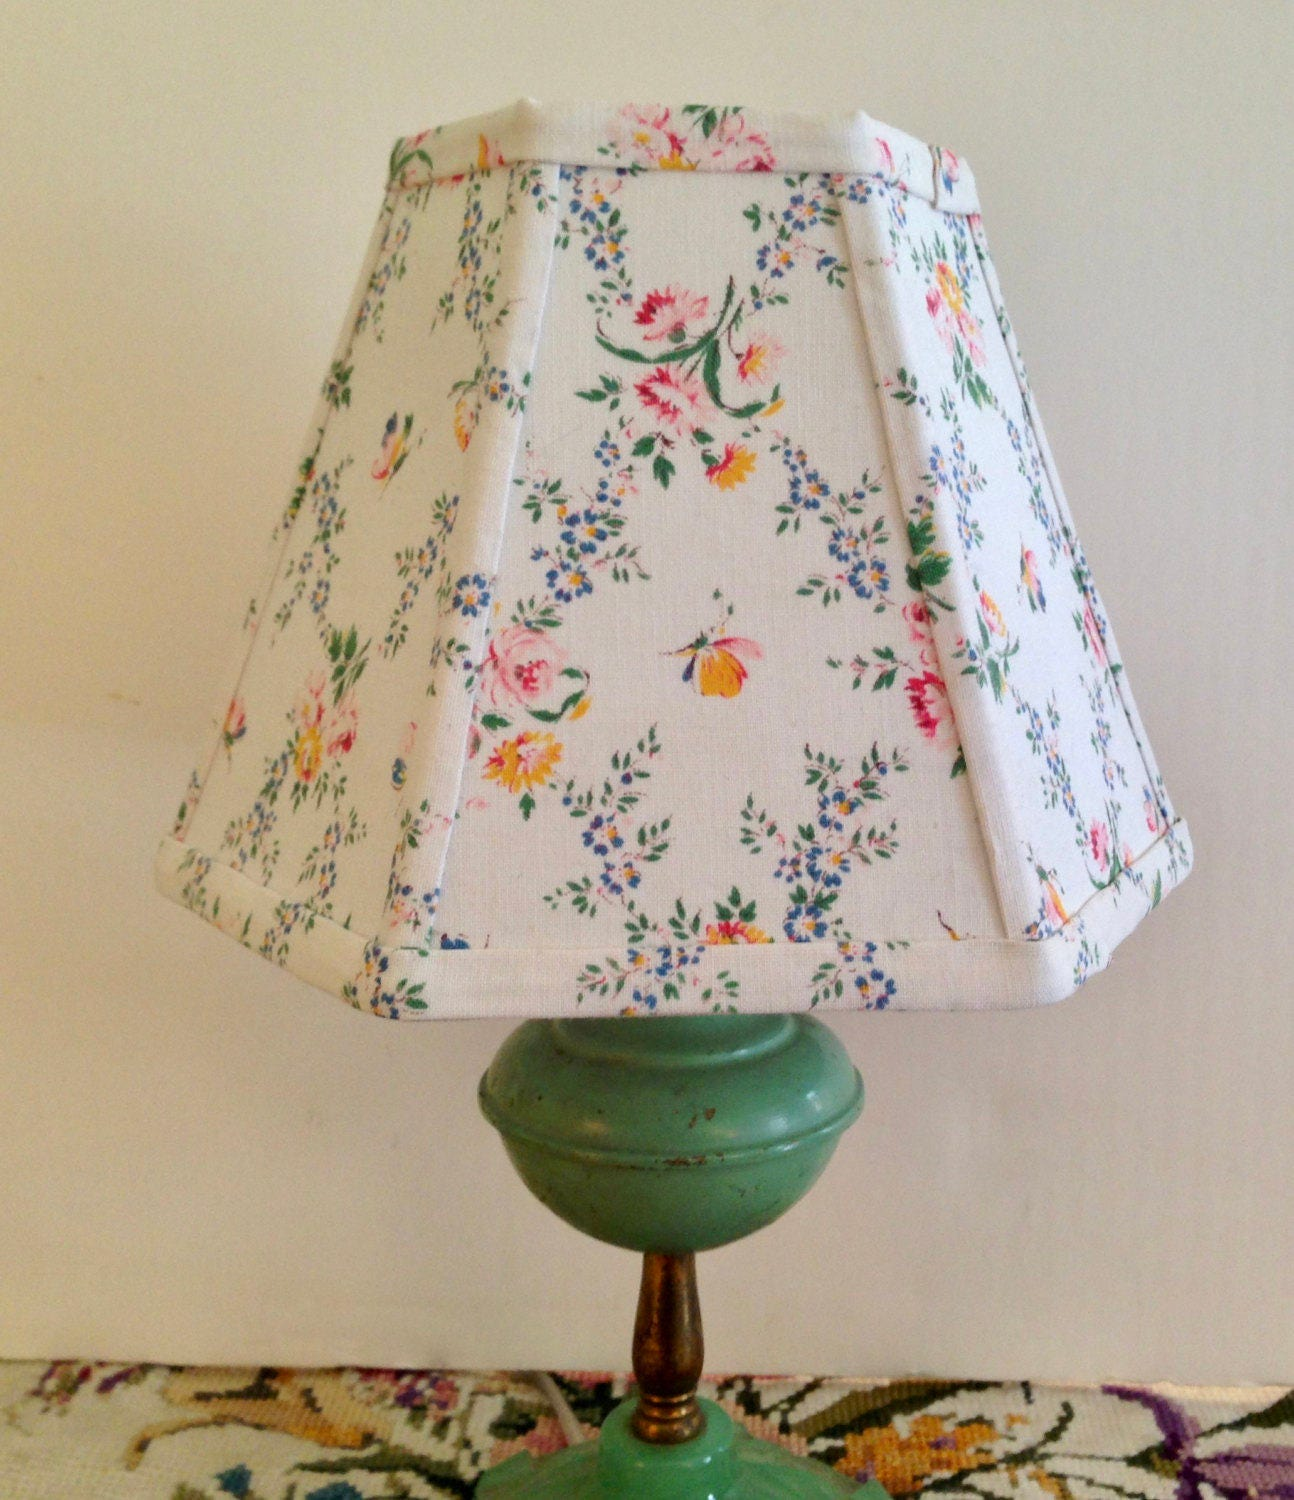 Cleveland Vintage Lighting Clip On Lampshade: French Floral Lamp Shade Small Clip Lampshade Pretty Vintage